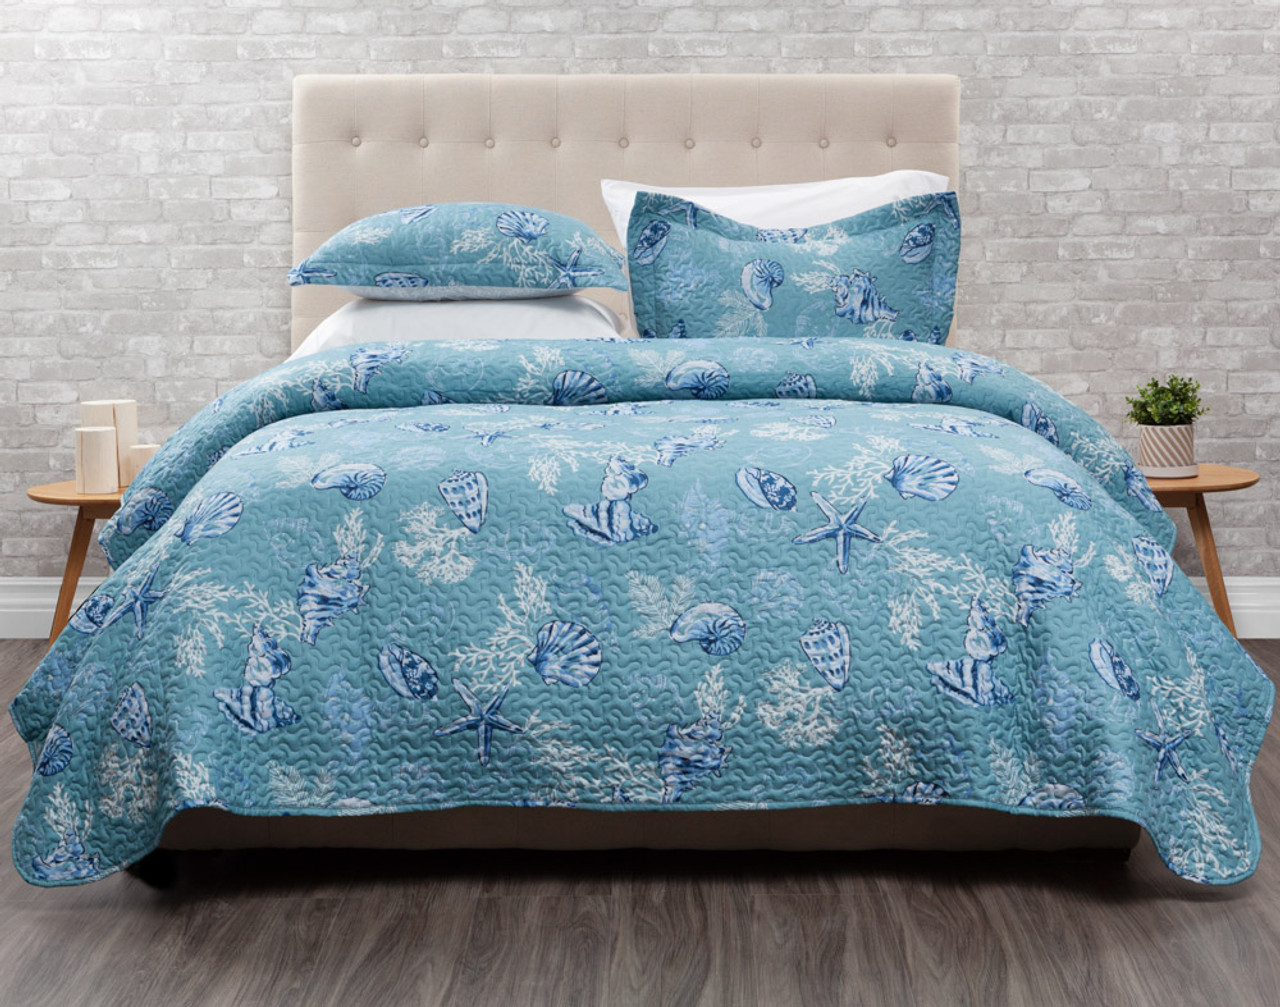 Shells Coverlet features blue and white seashells on an aqua blue background.